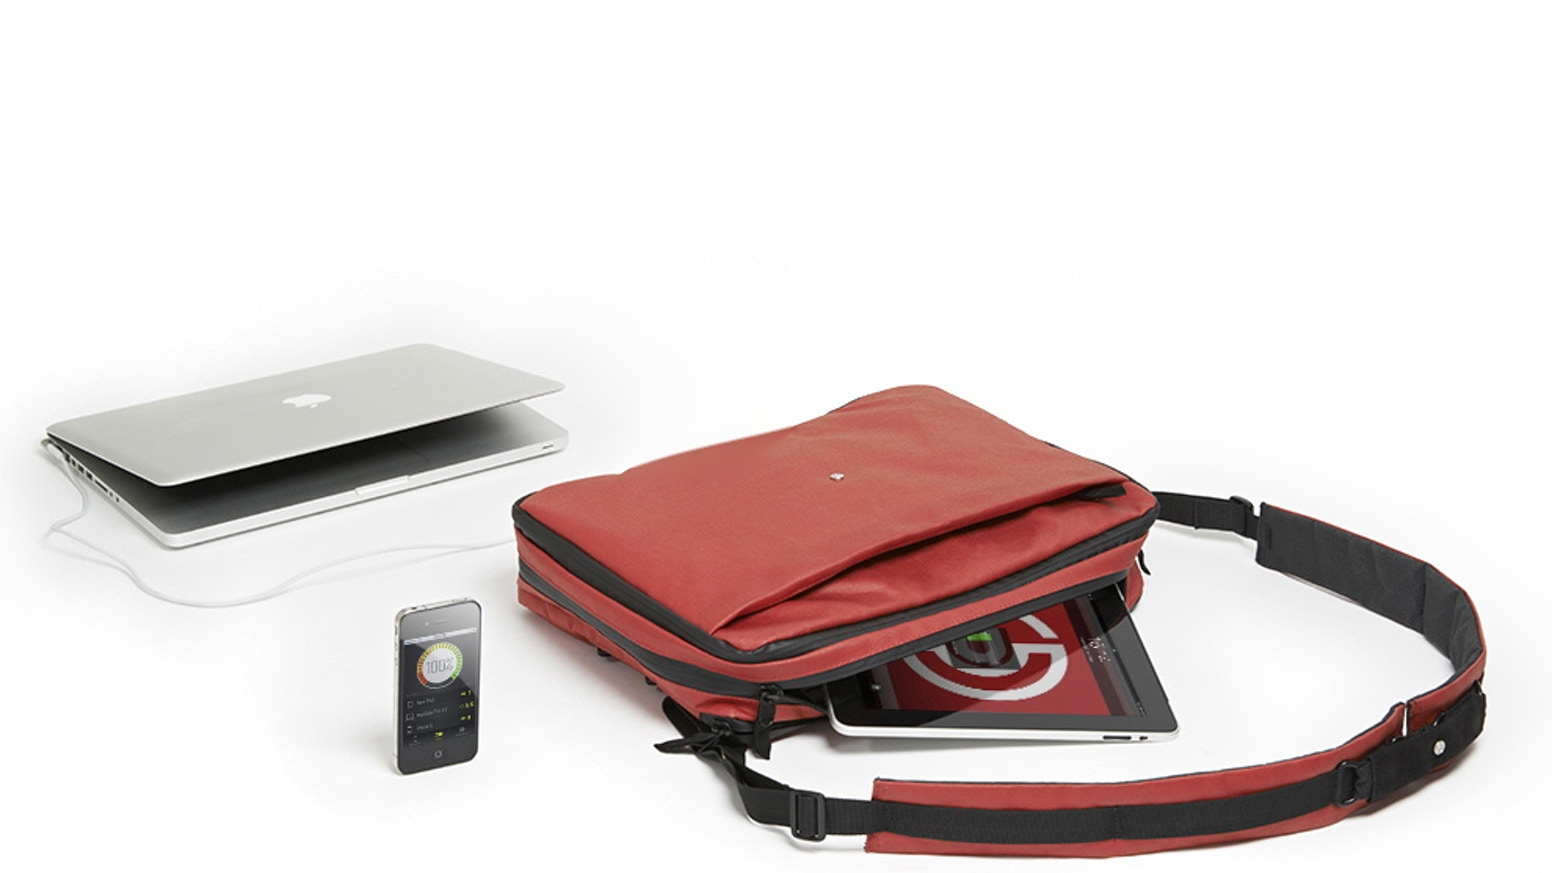 A bag that charges all your devices, communicates with your smartphone, and transforms from a messenger, to a backpack, or briefcase.